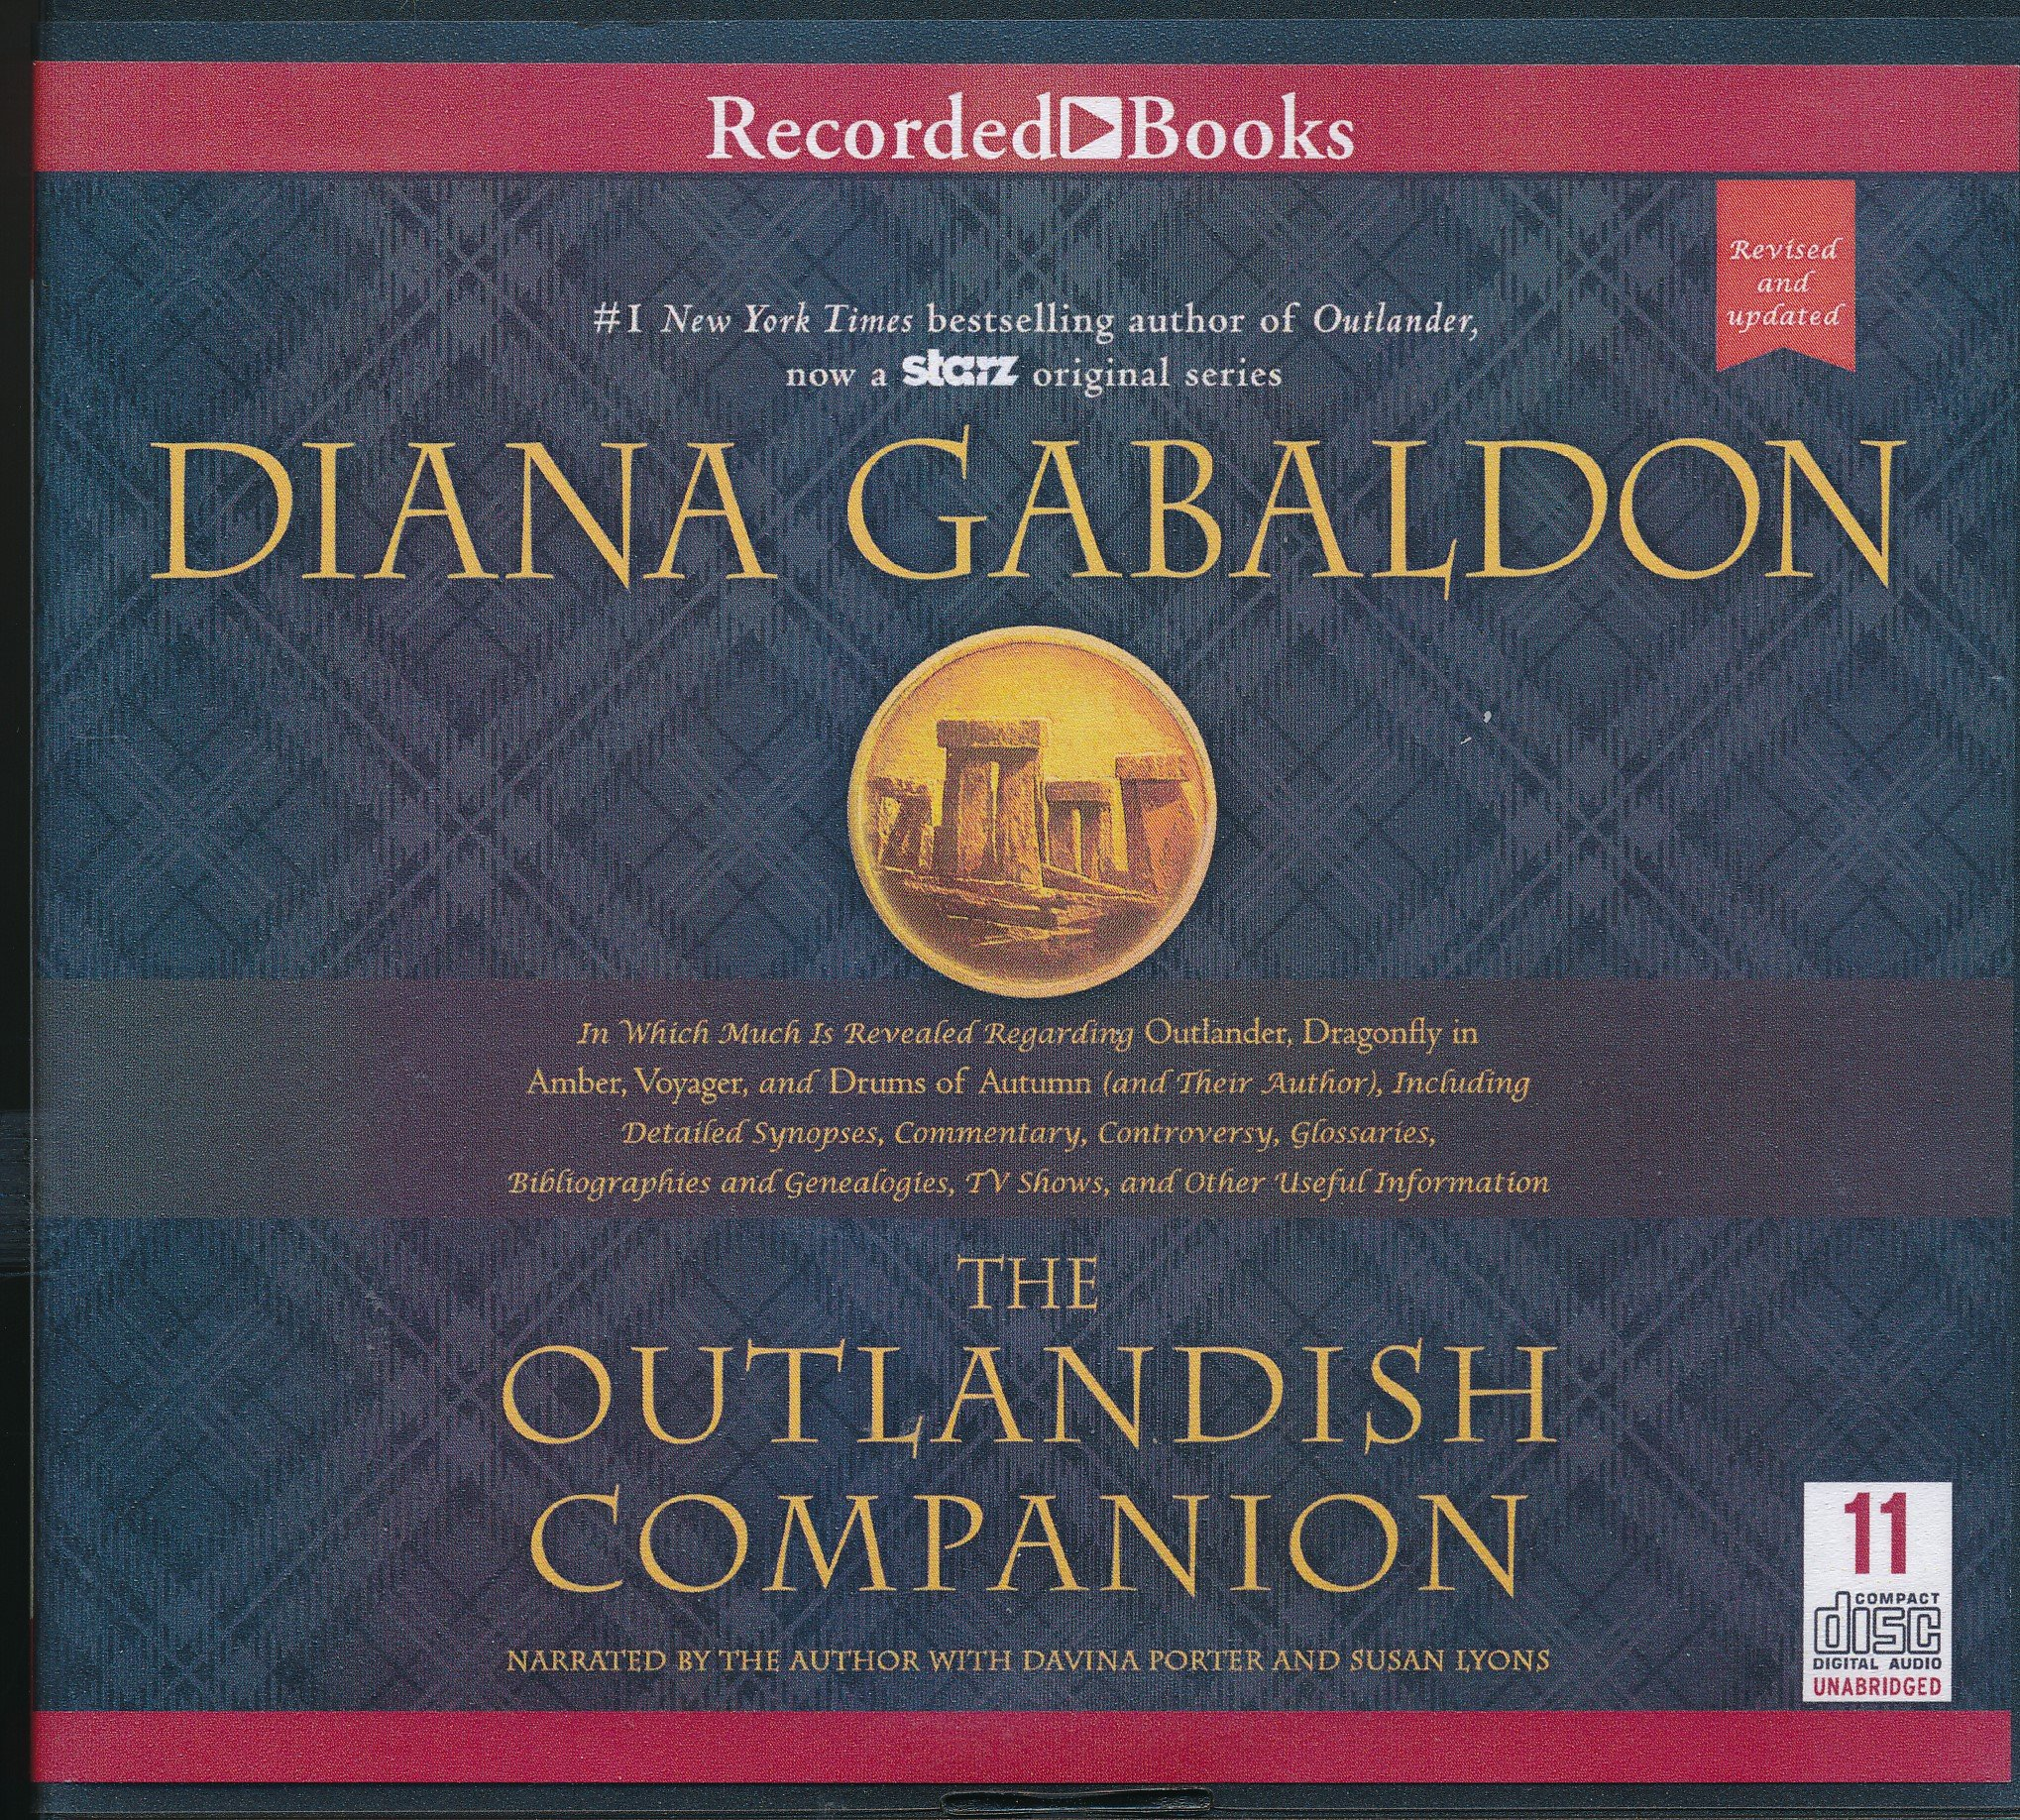 Companion to Outlander, Dragonfly in Amber, Voyager, and Drums of Autumn